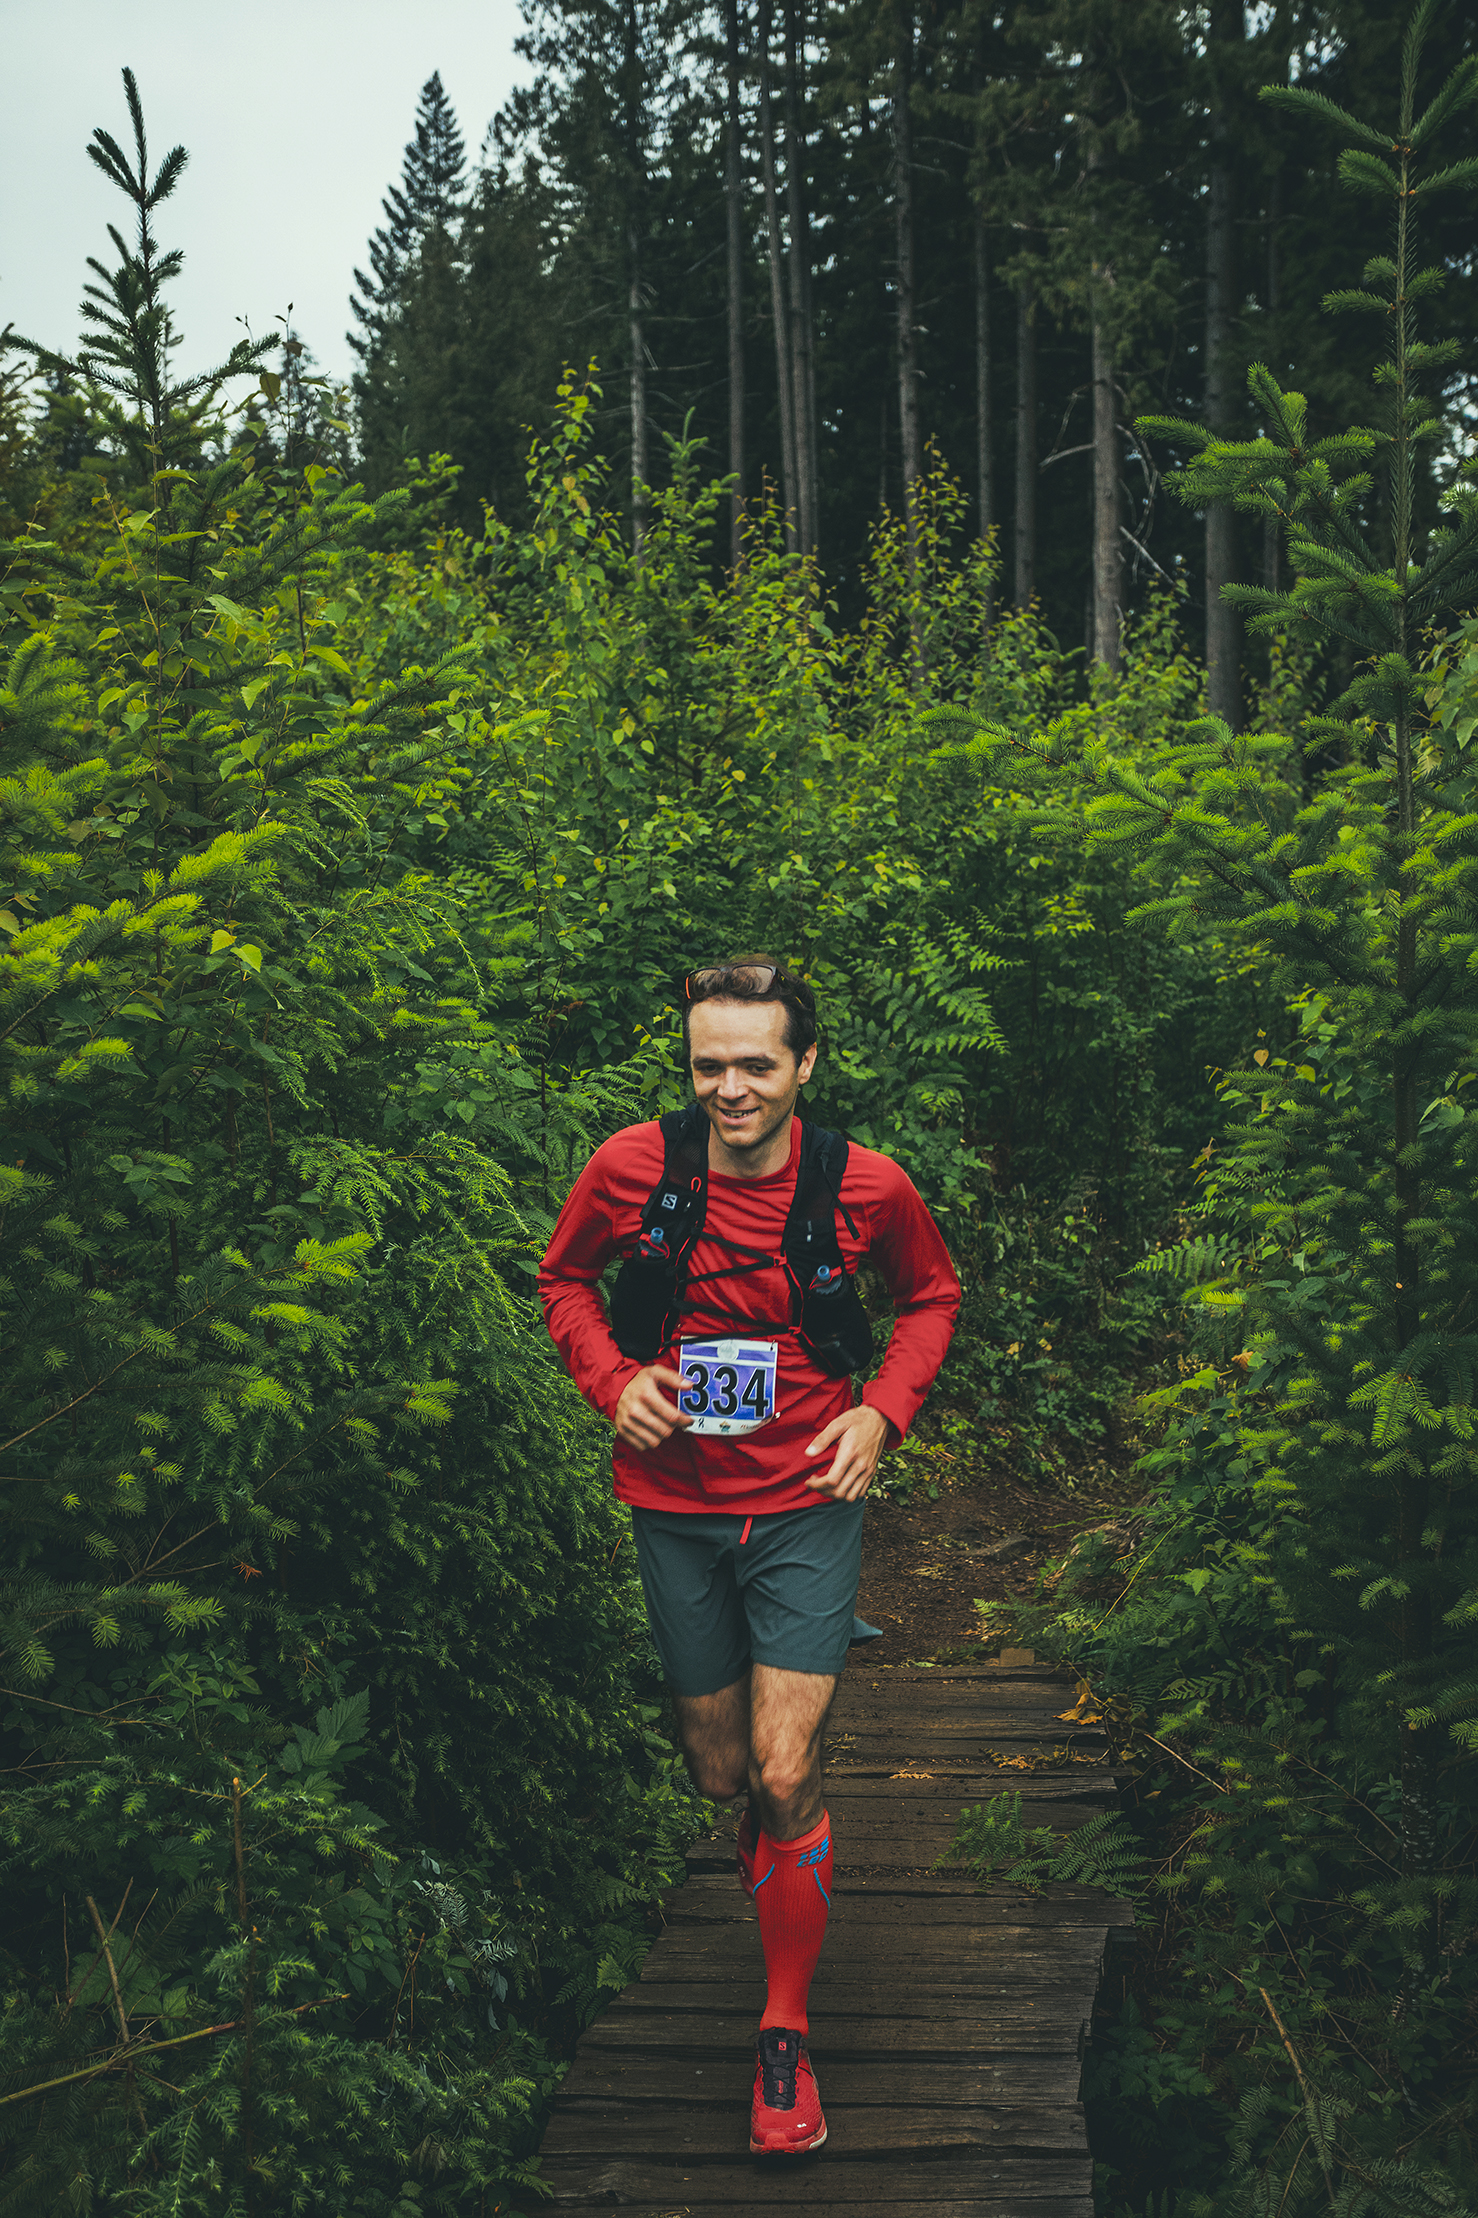 Fraser Valley Trail Races - Bear Mountain - IMG_1483 by Brice Ferre Studio - Vancouver Portrait Adventure and Athlete Photographer.jpg